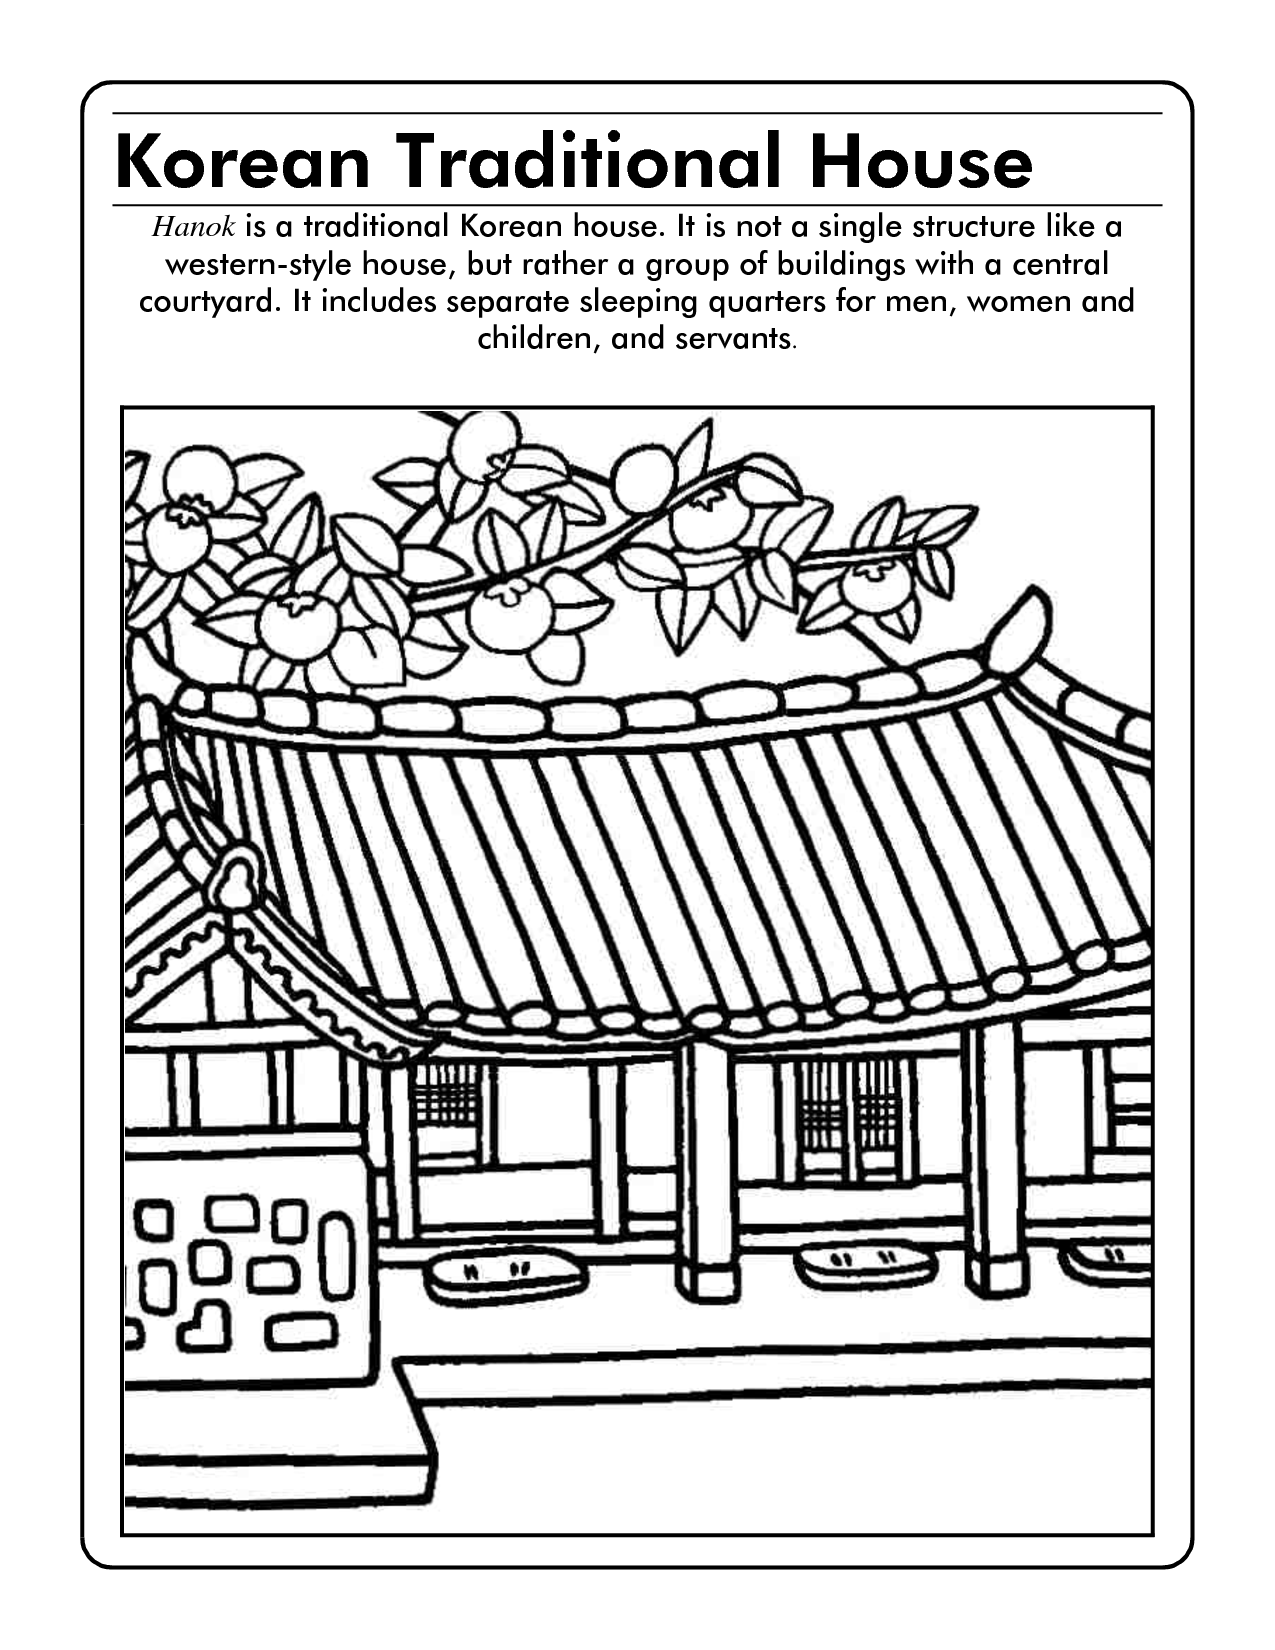 South korea coloring book - Korea Coloring Page Scope Of Work Template